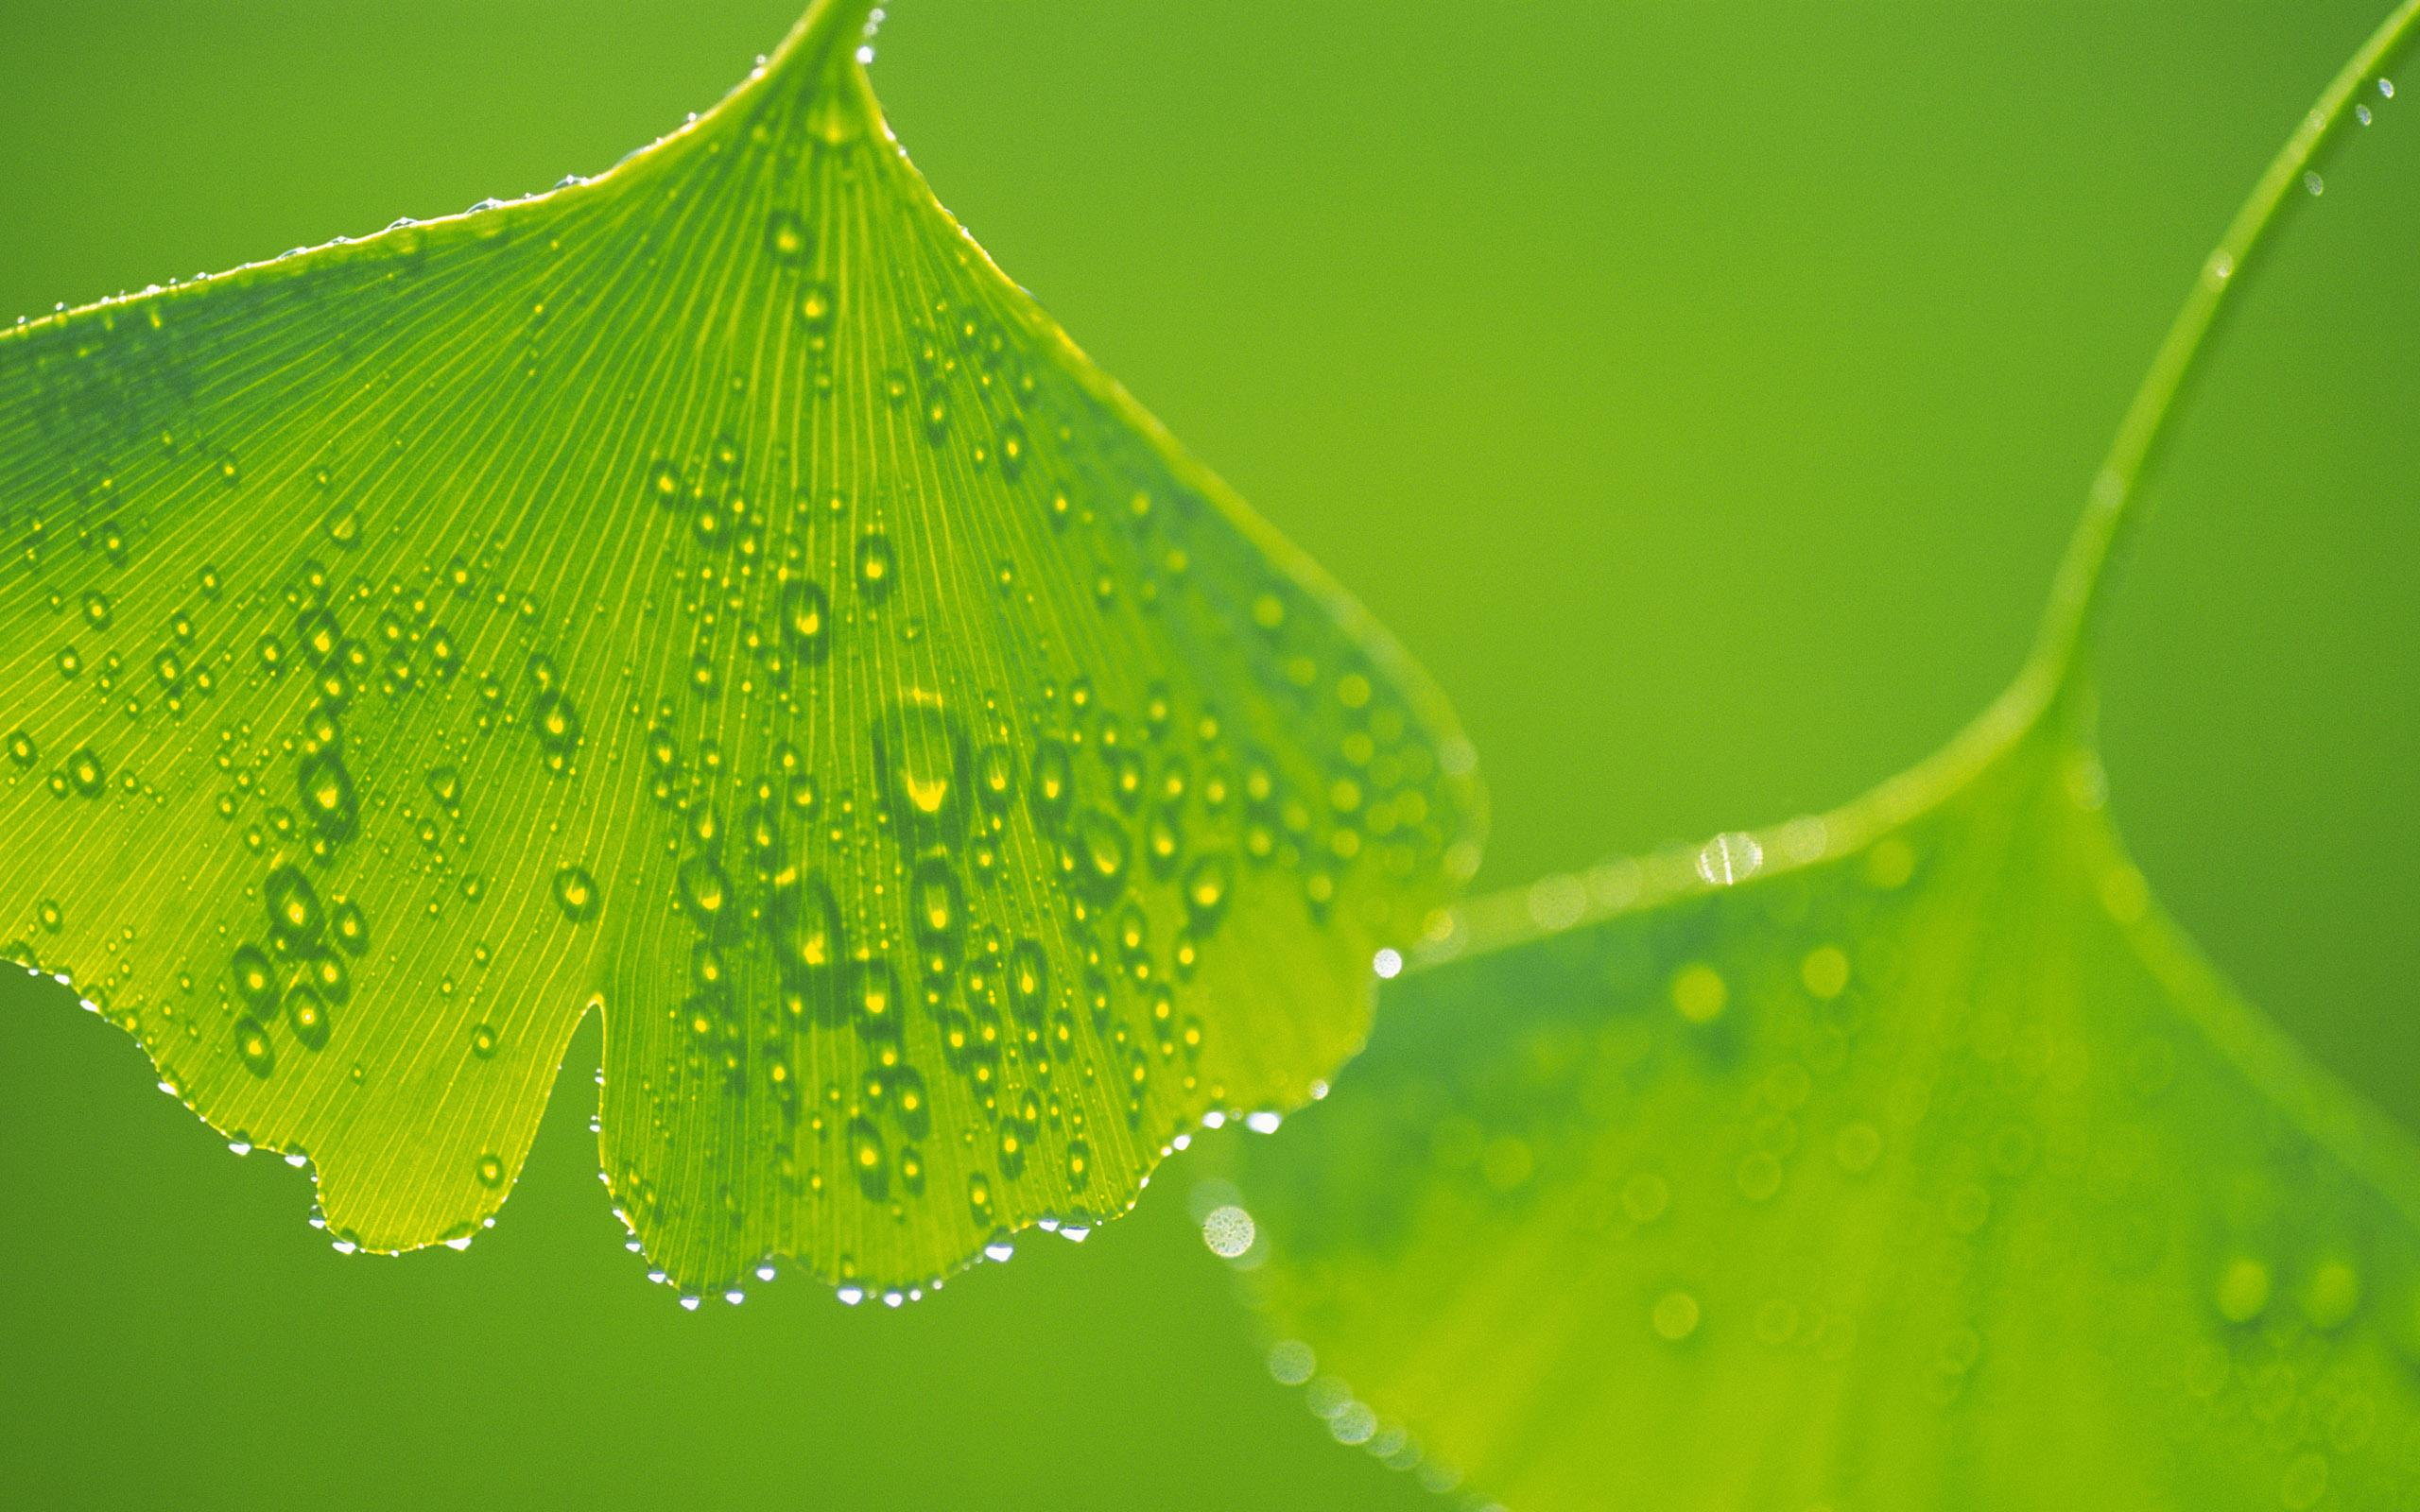 Green Abstract 1080p Wallpaper 1920x1080 Natur #7869 Hd ...